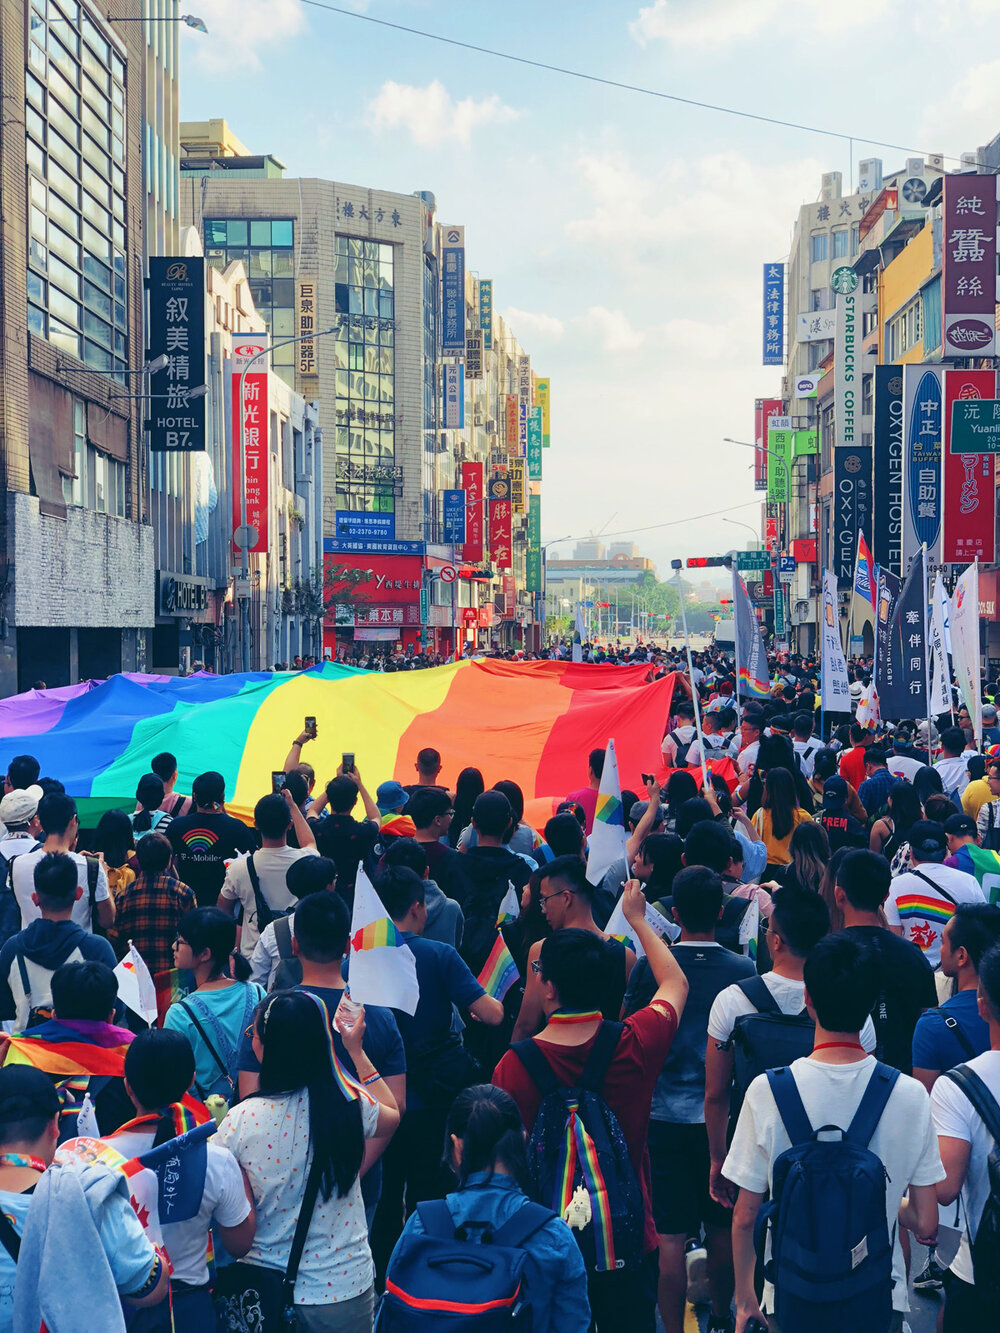 English Guide — 第十七屆臺灣同志遊行官方網站 / 2019 Taiwan LGBT Pride Official Site